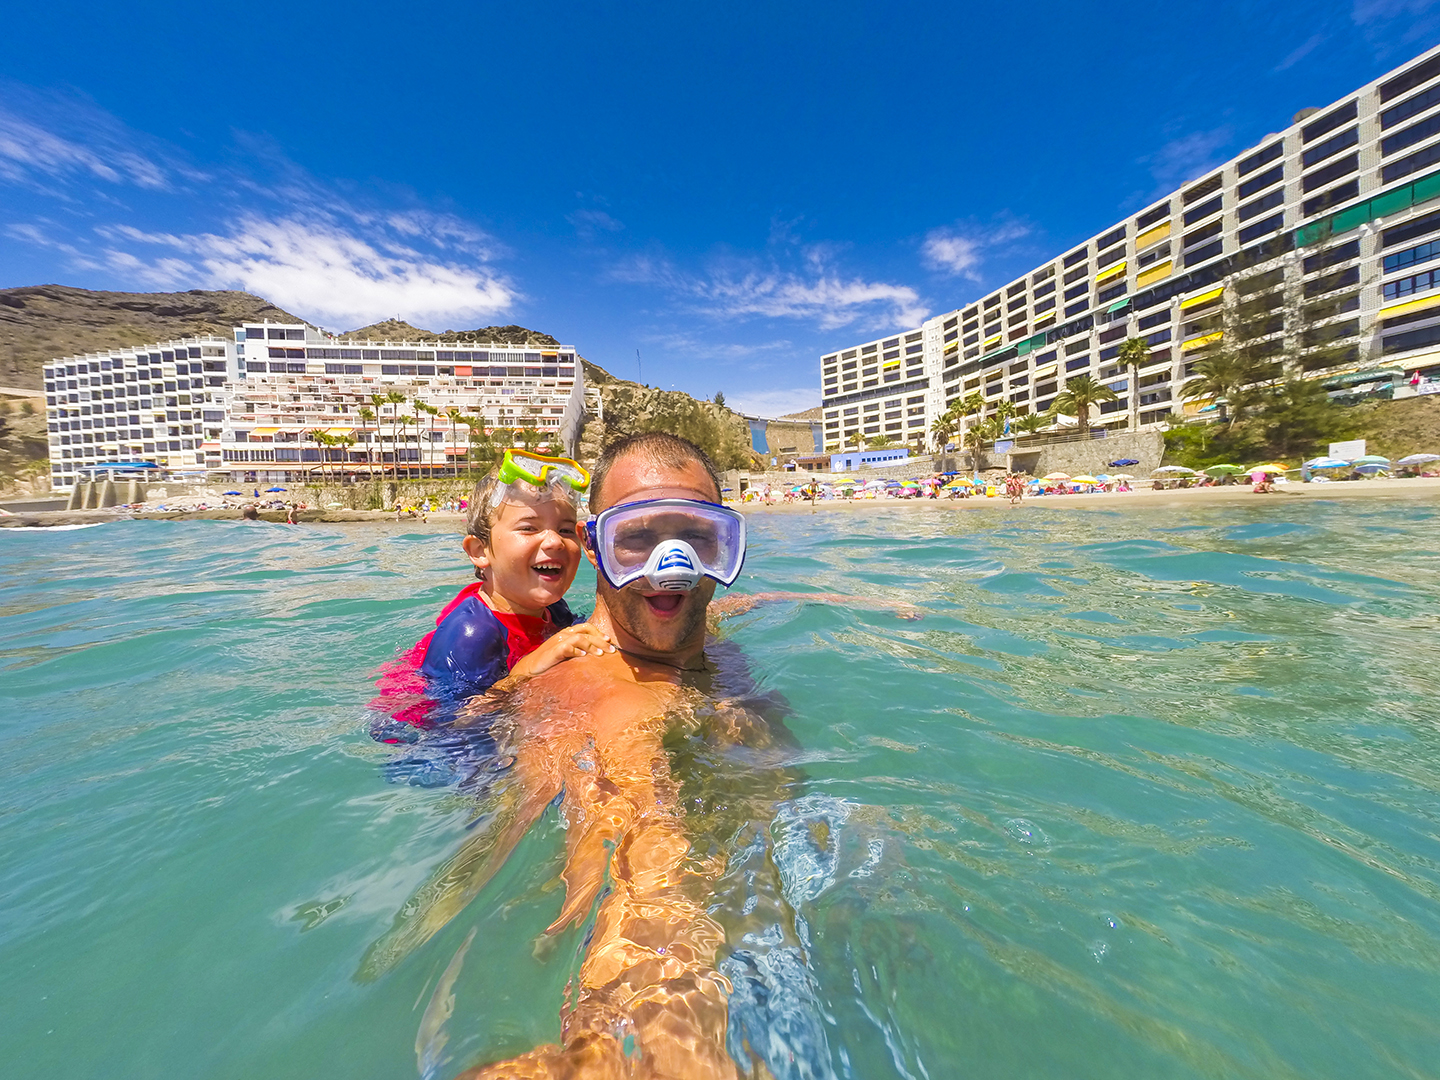 Swimming selfie at Patalavaca beach in Gran Canaria